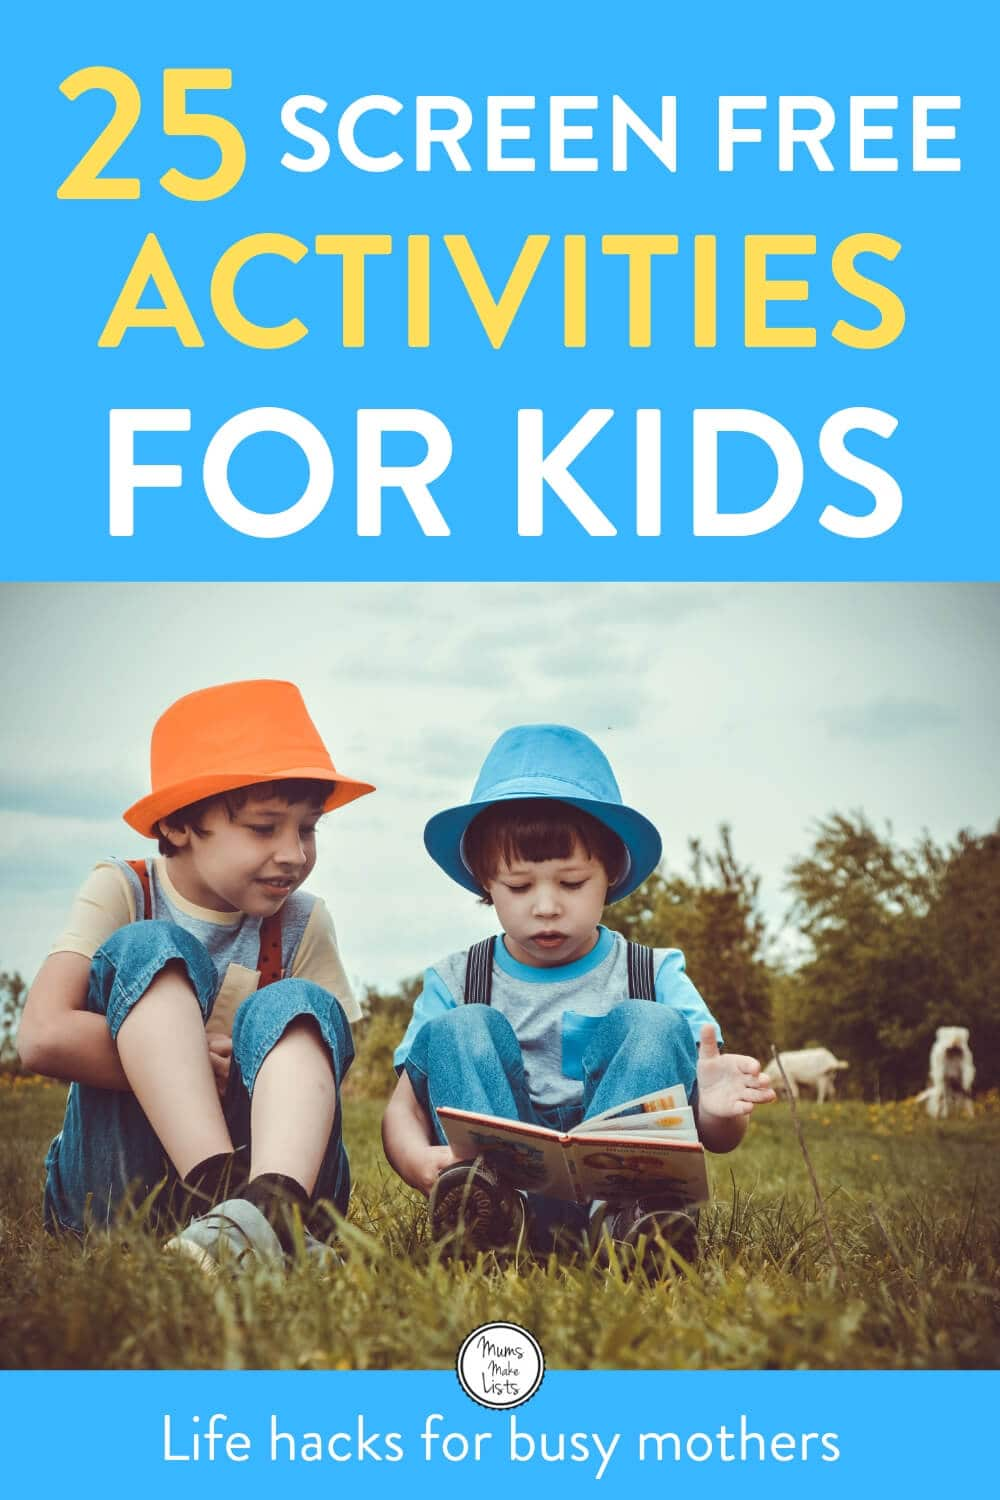 Screen free activities for kids, kids activities, easy activities for kids